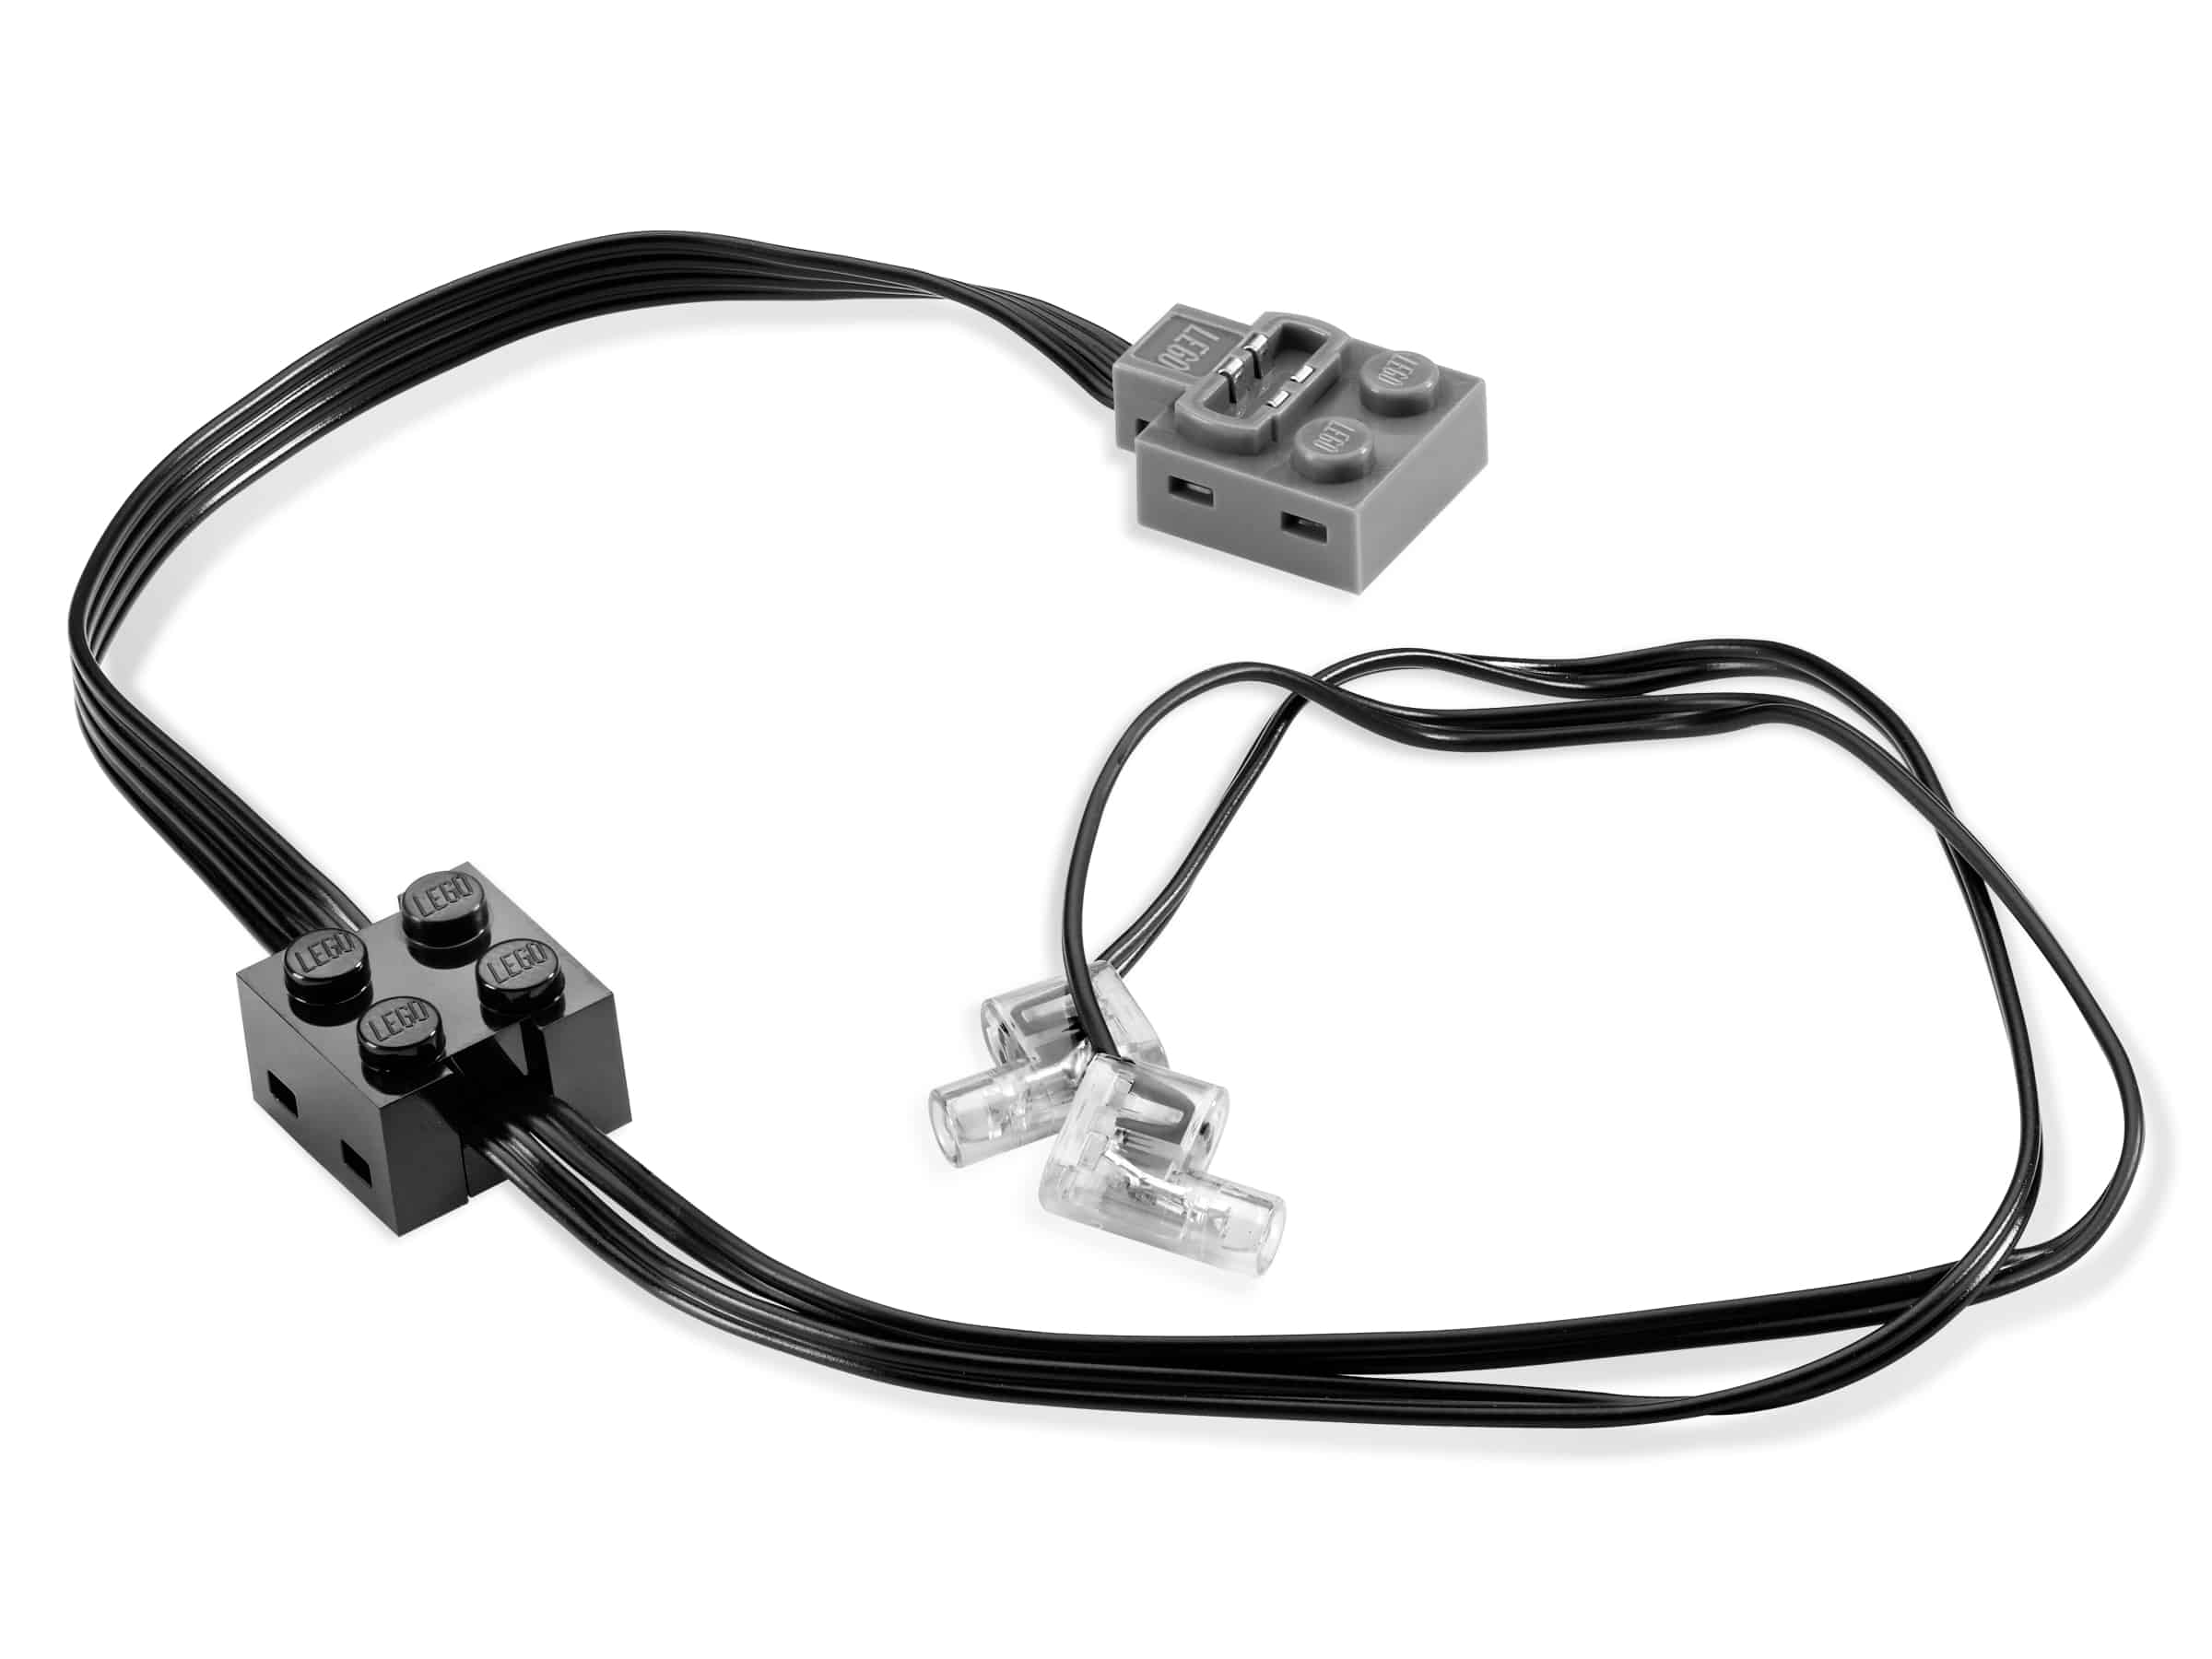 lego 8870 power functions valot